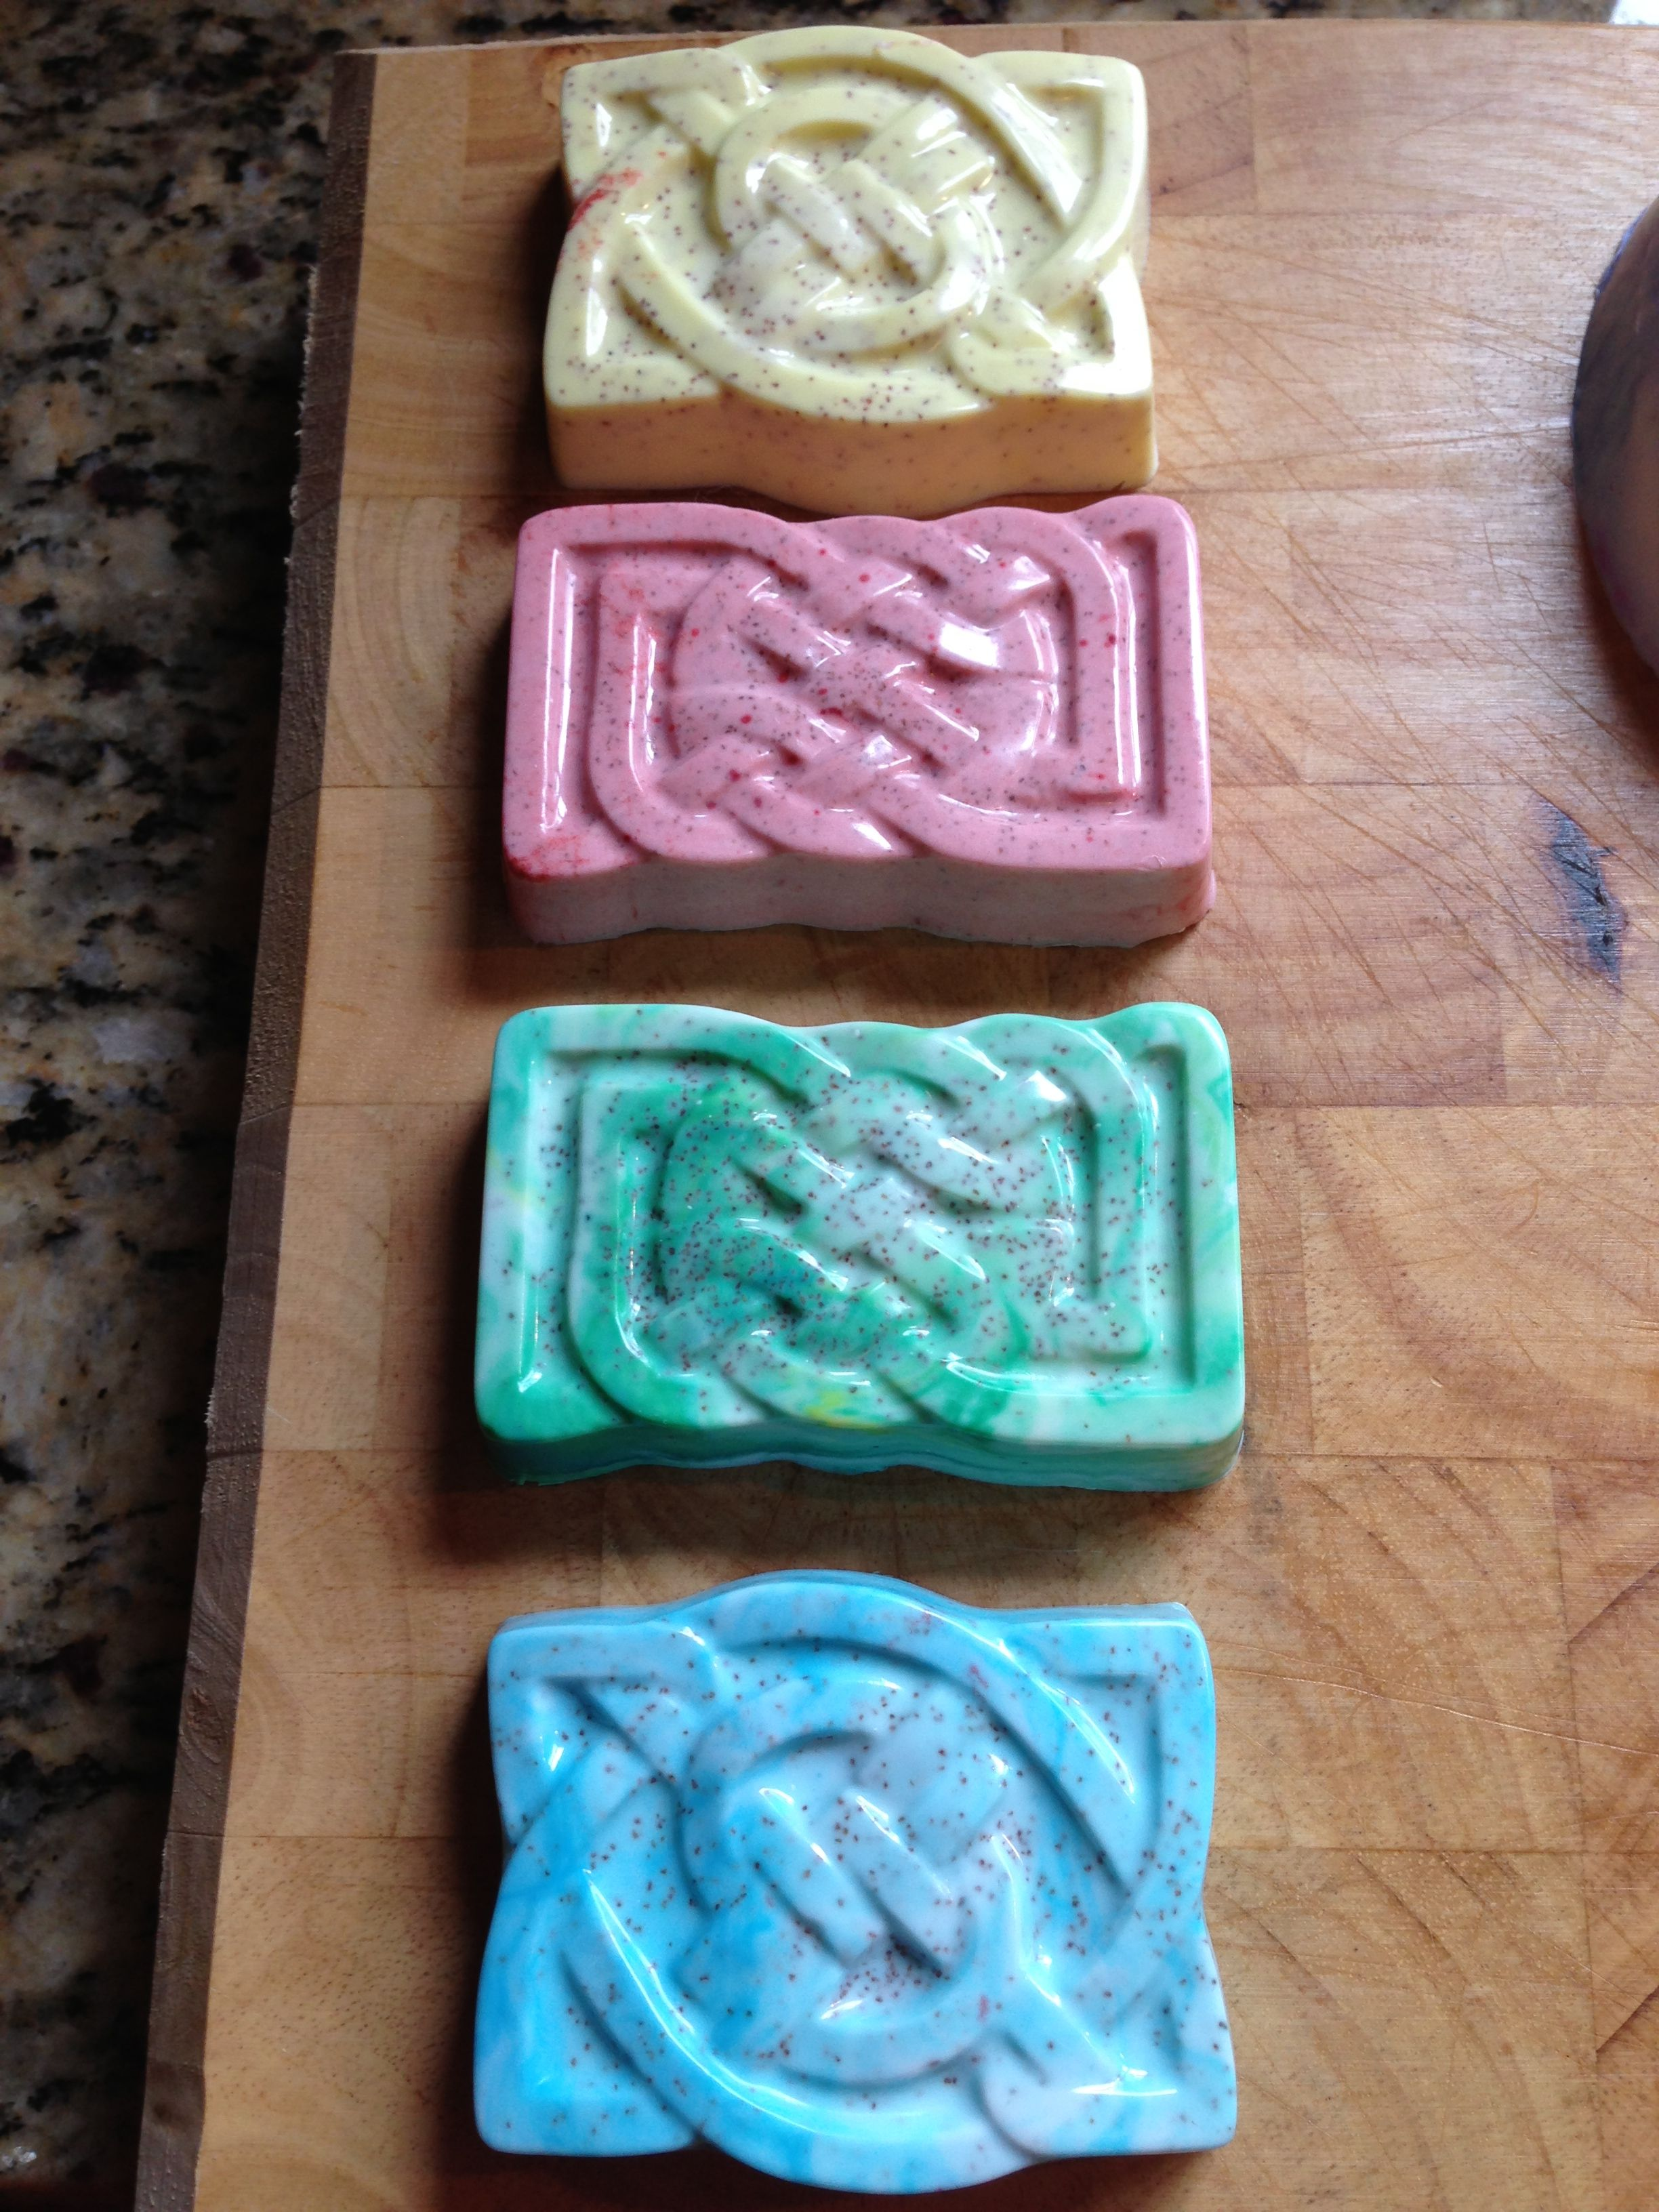 homemade soap from hobby lobby kit home made soaps n scents pinterest soaps hobbies and. Black Bedroom Furniture Sets. Home Design Ideas